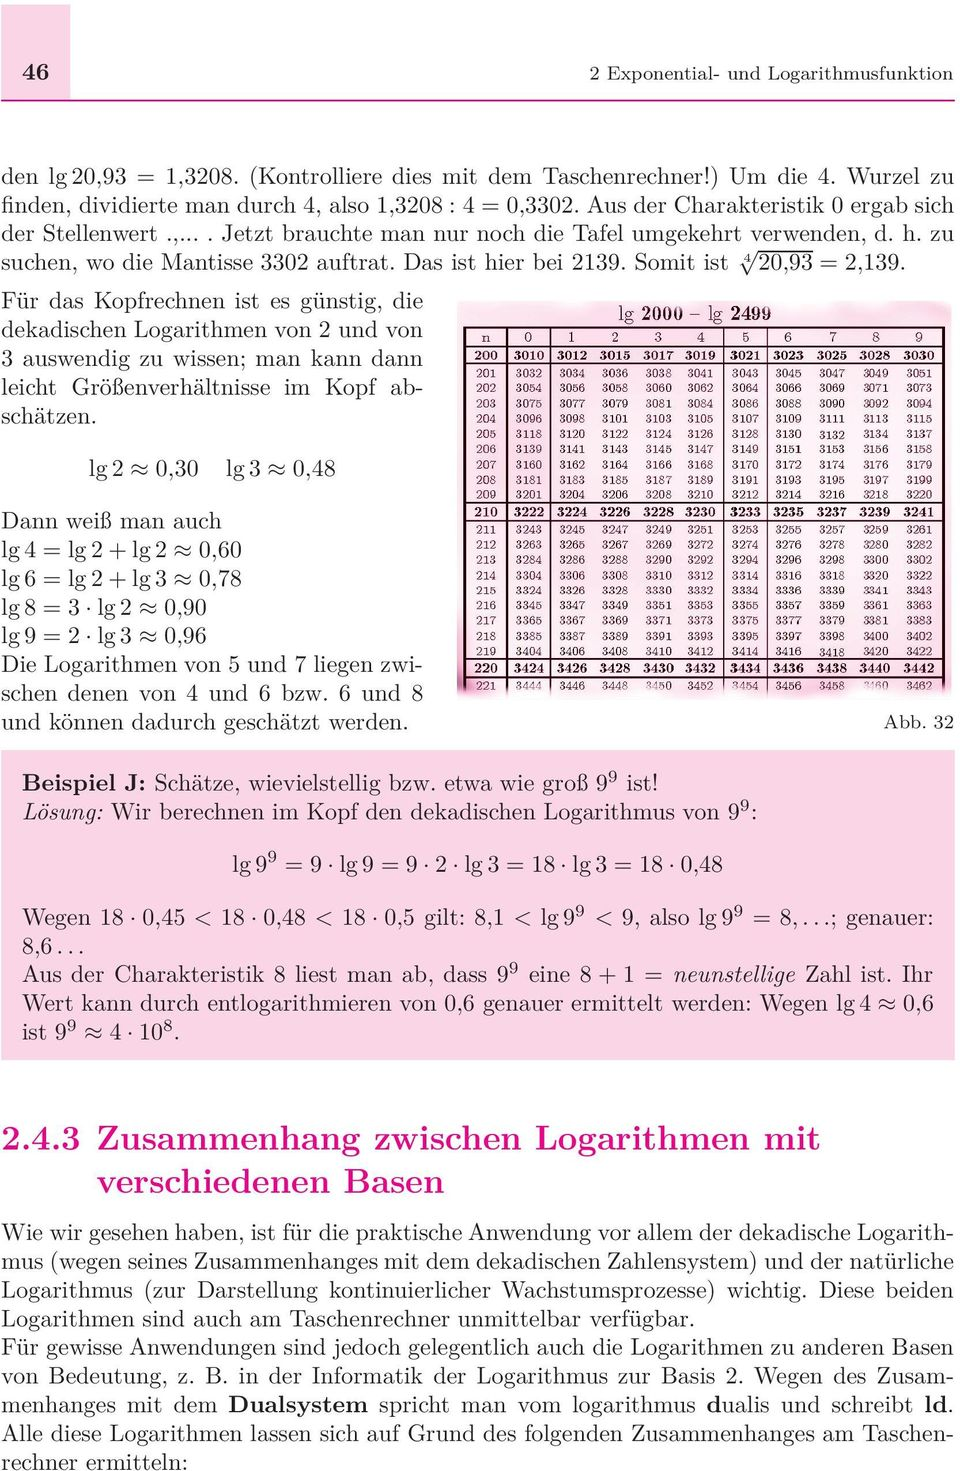 2 Exponential- und Logarithmusfunktion - PDF